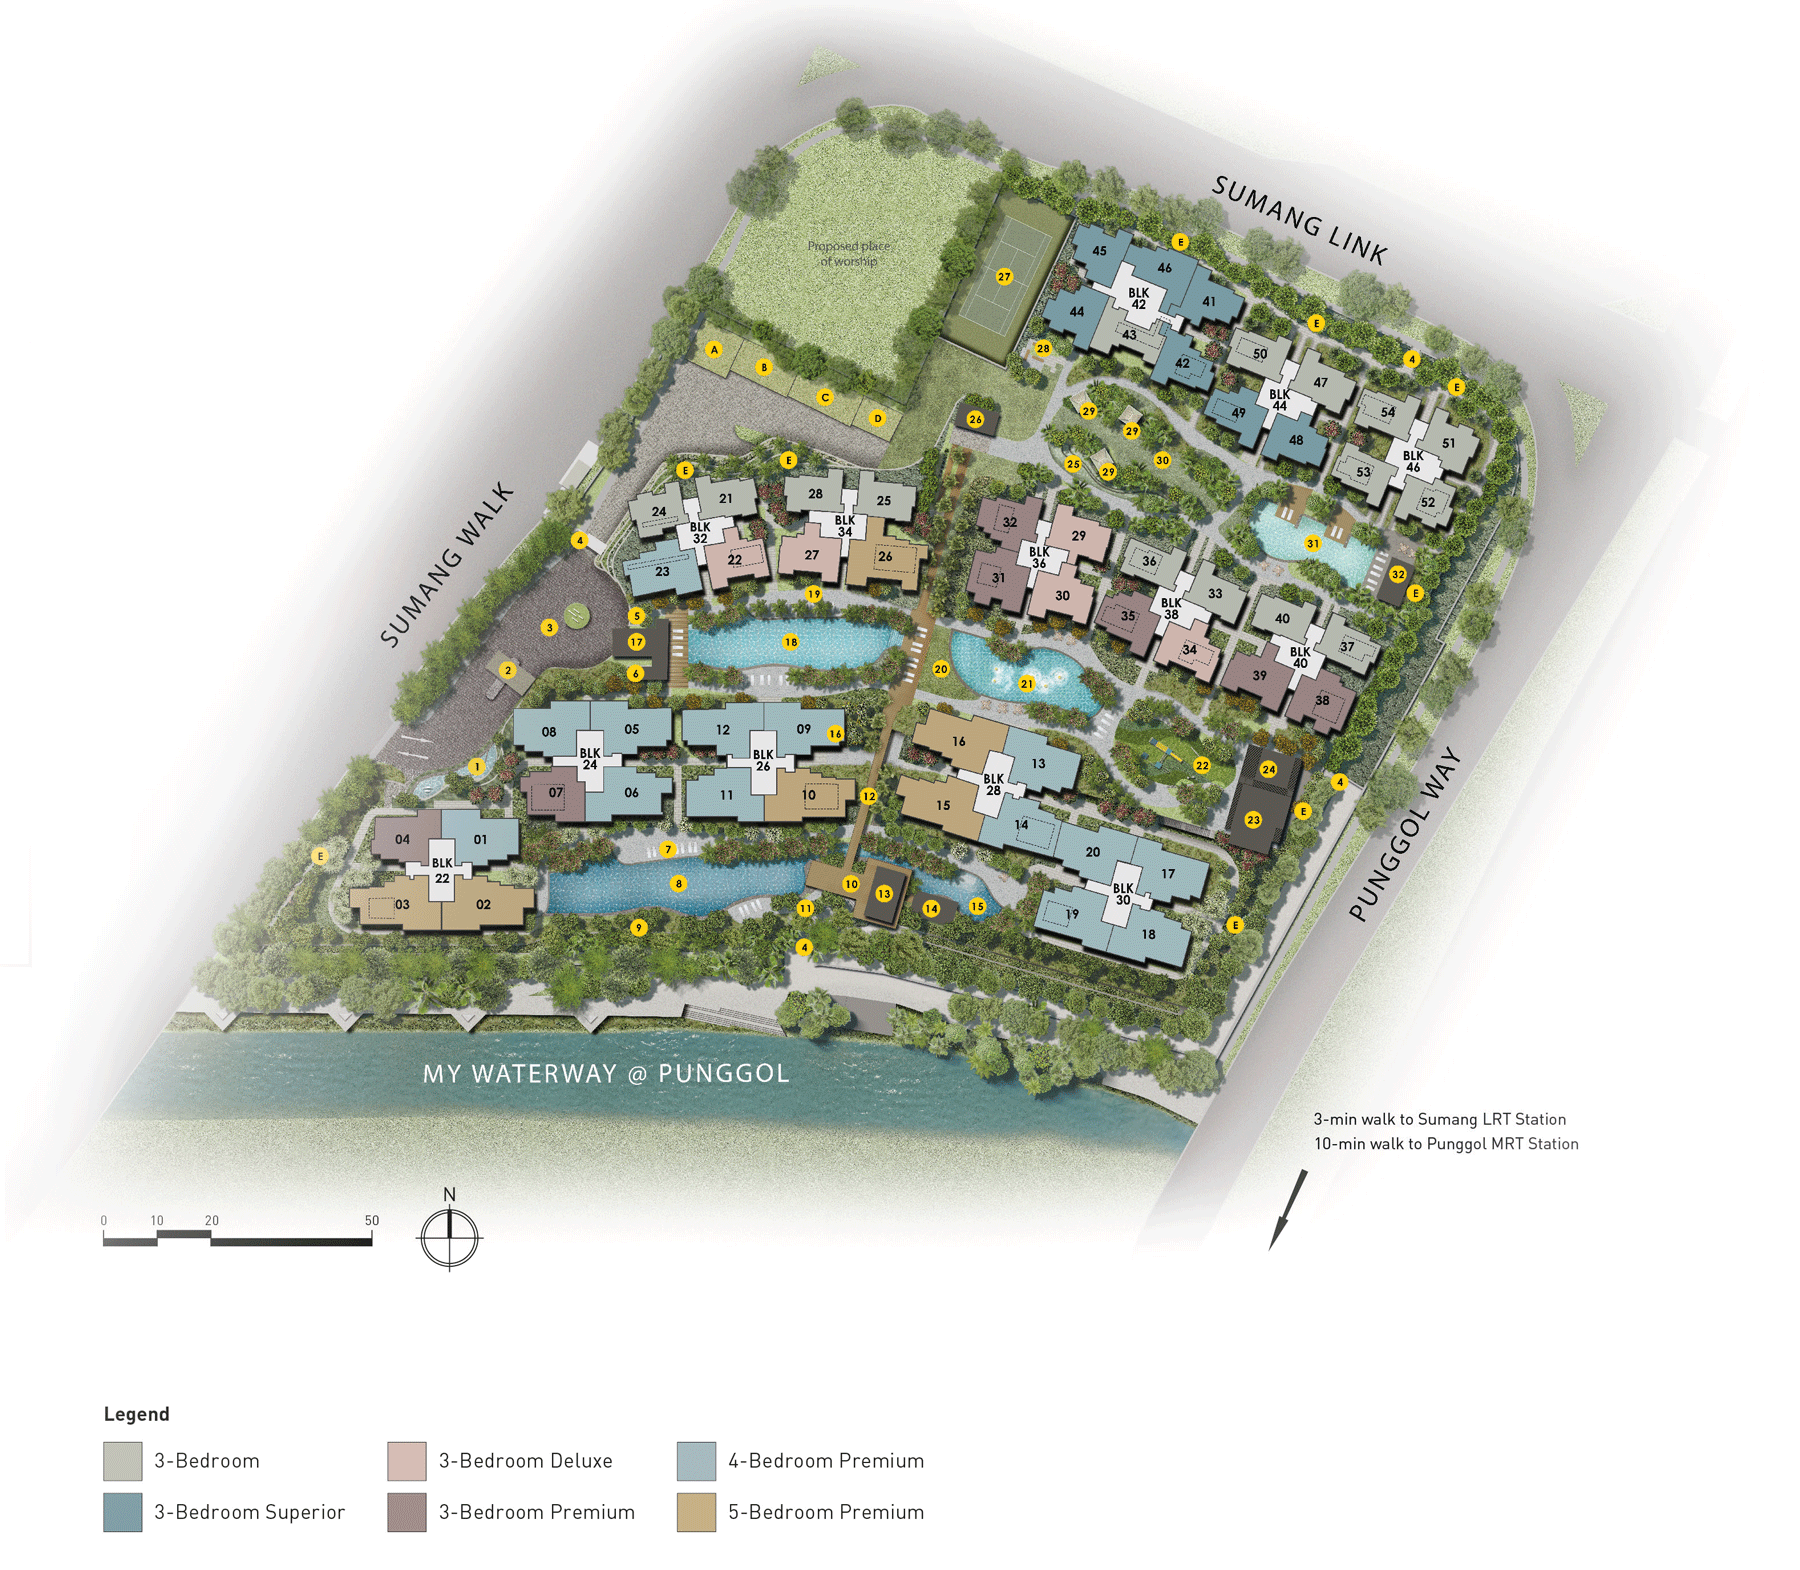 Site Map of Piermont Ground showing the 4 different zones within the development